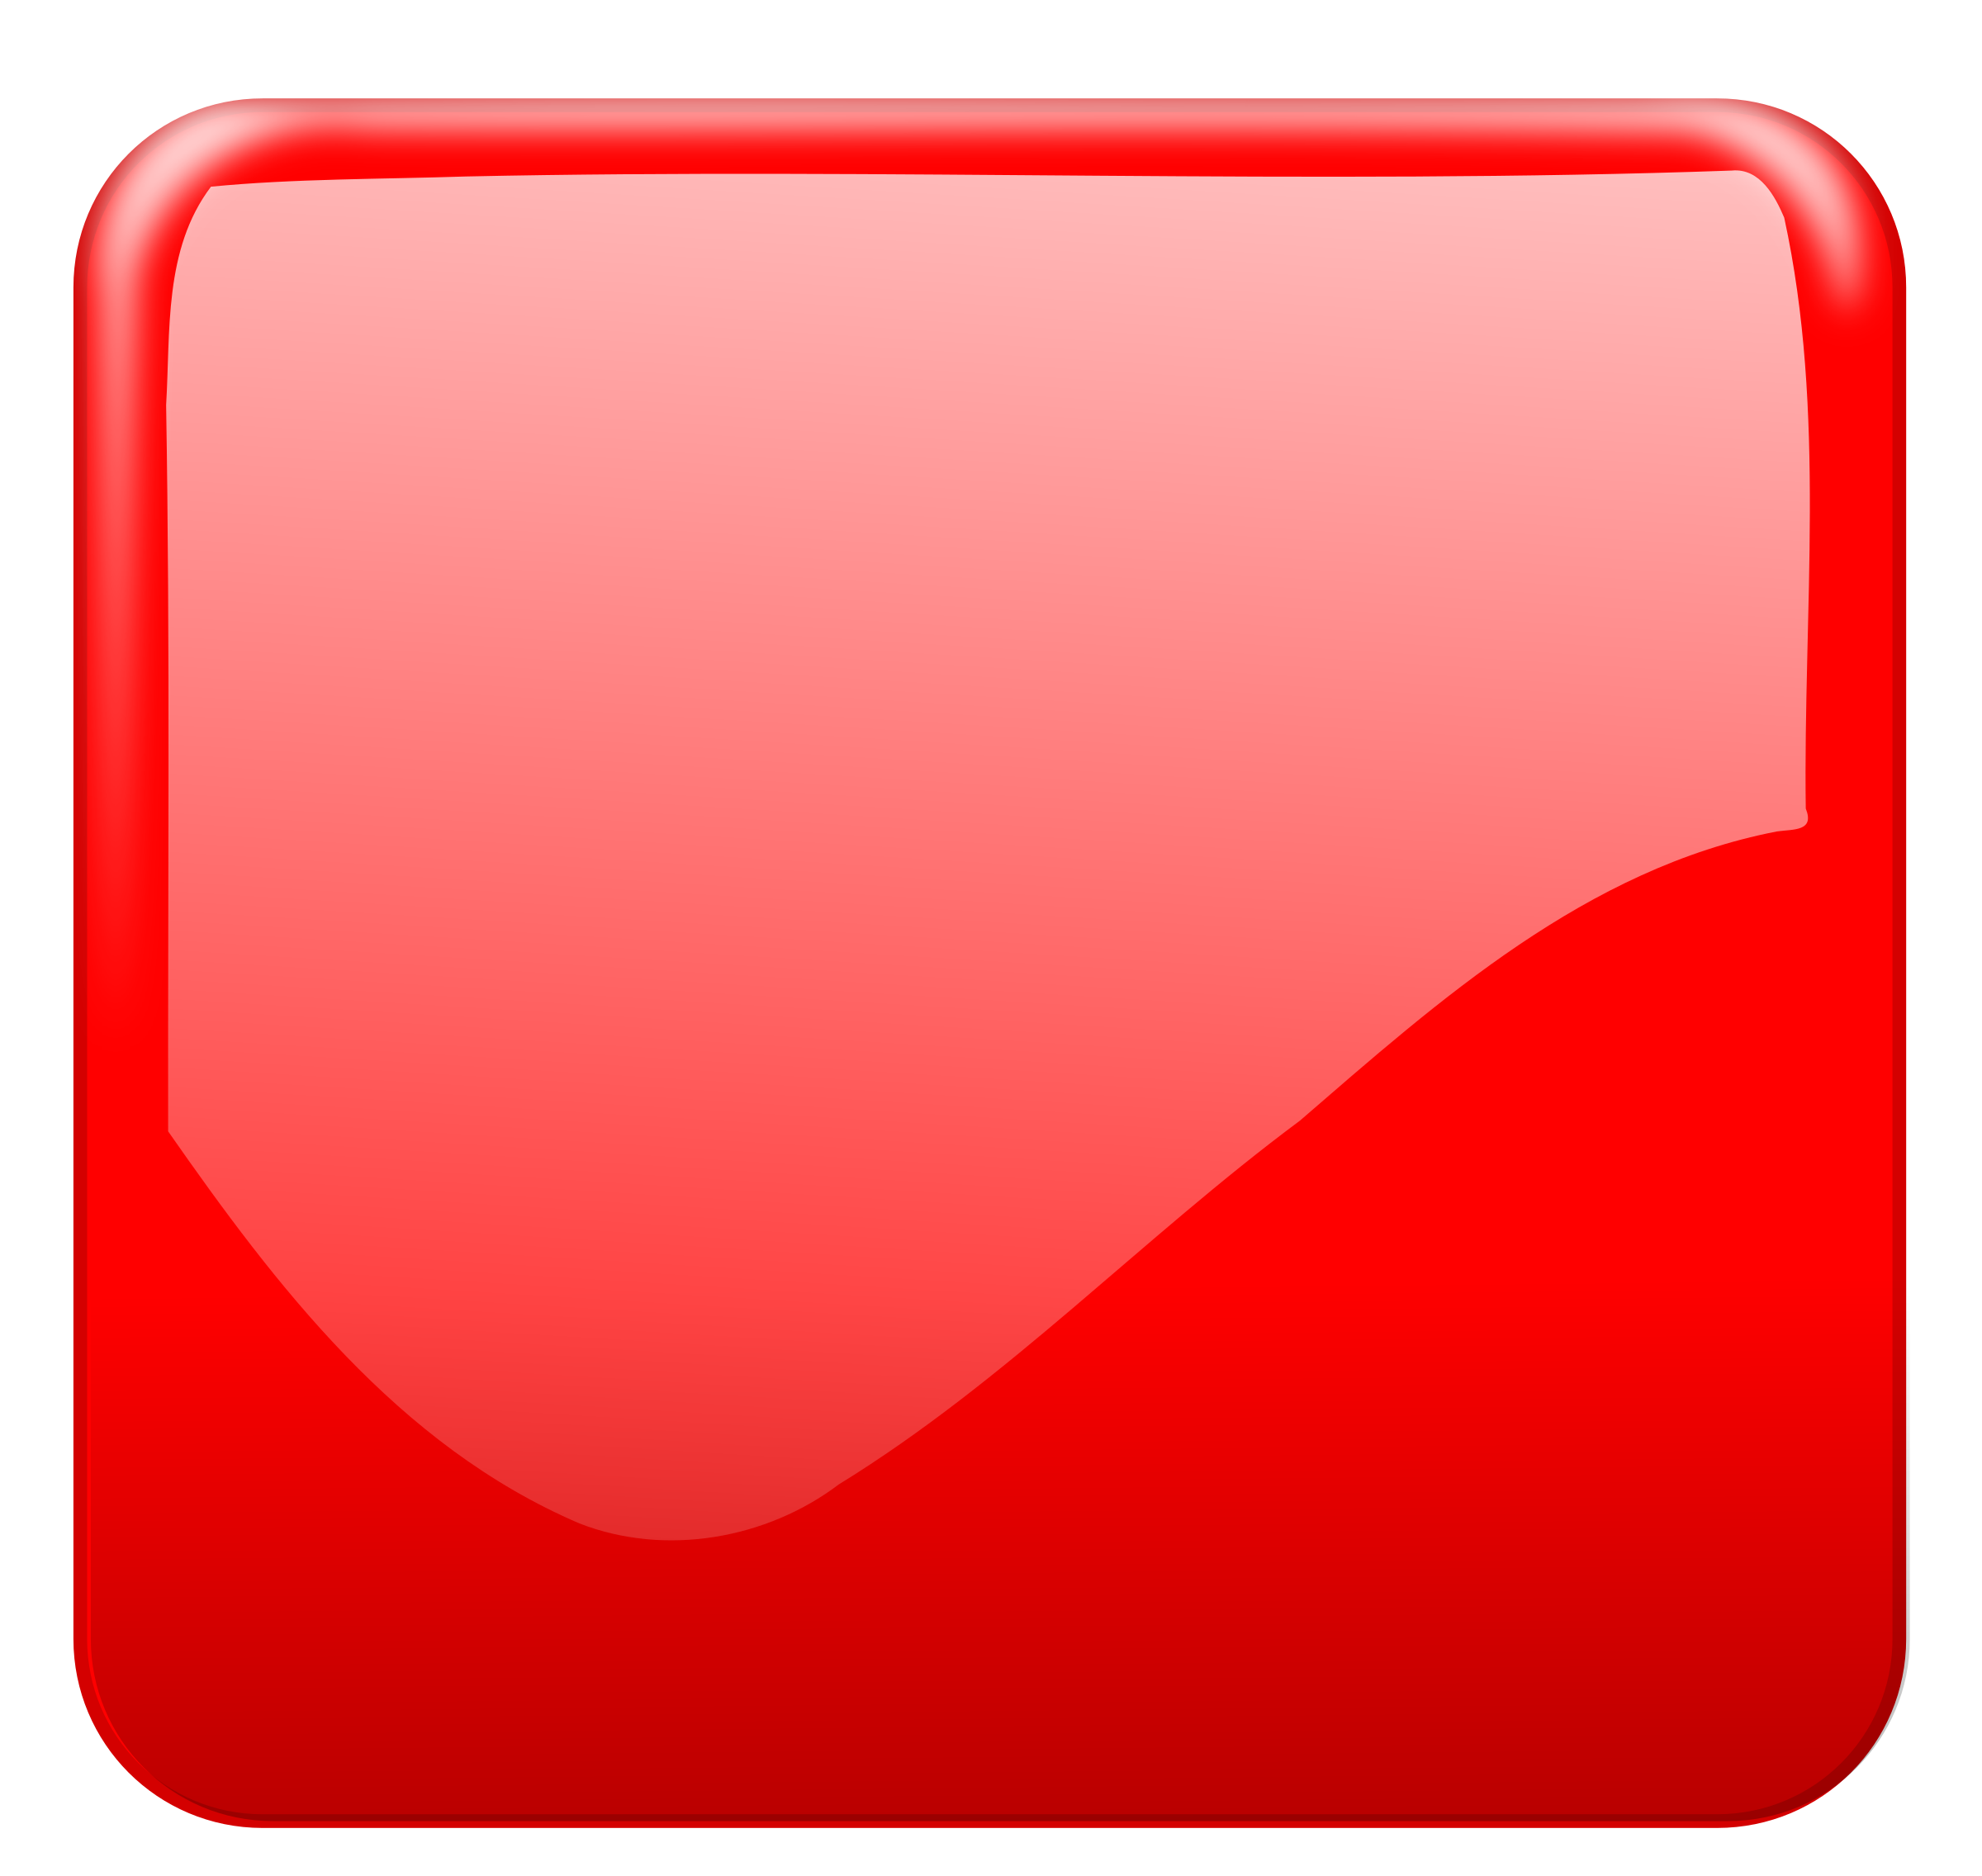 Buttons red png. Clipart button big image